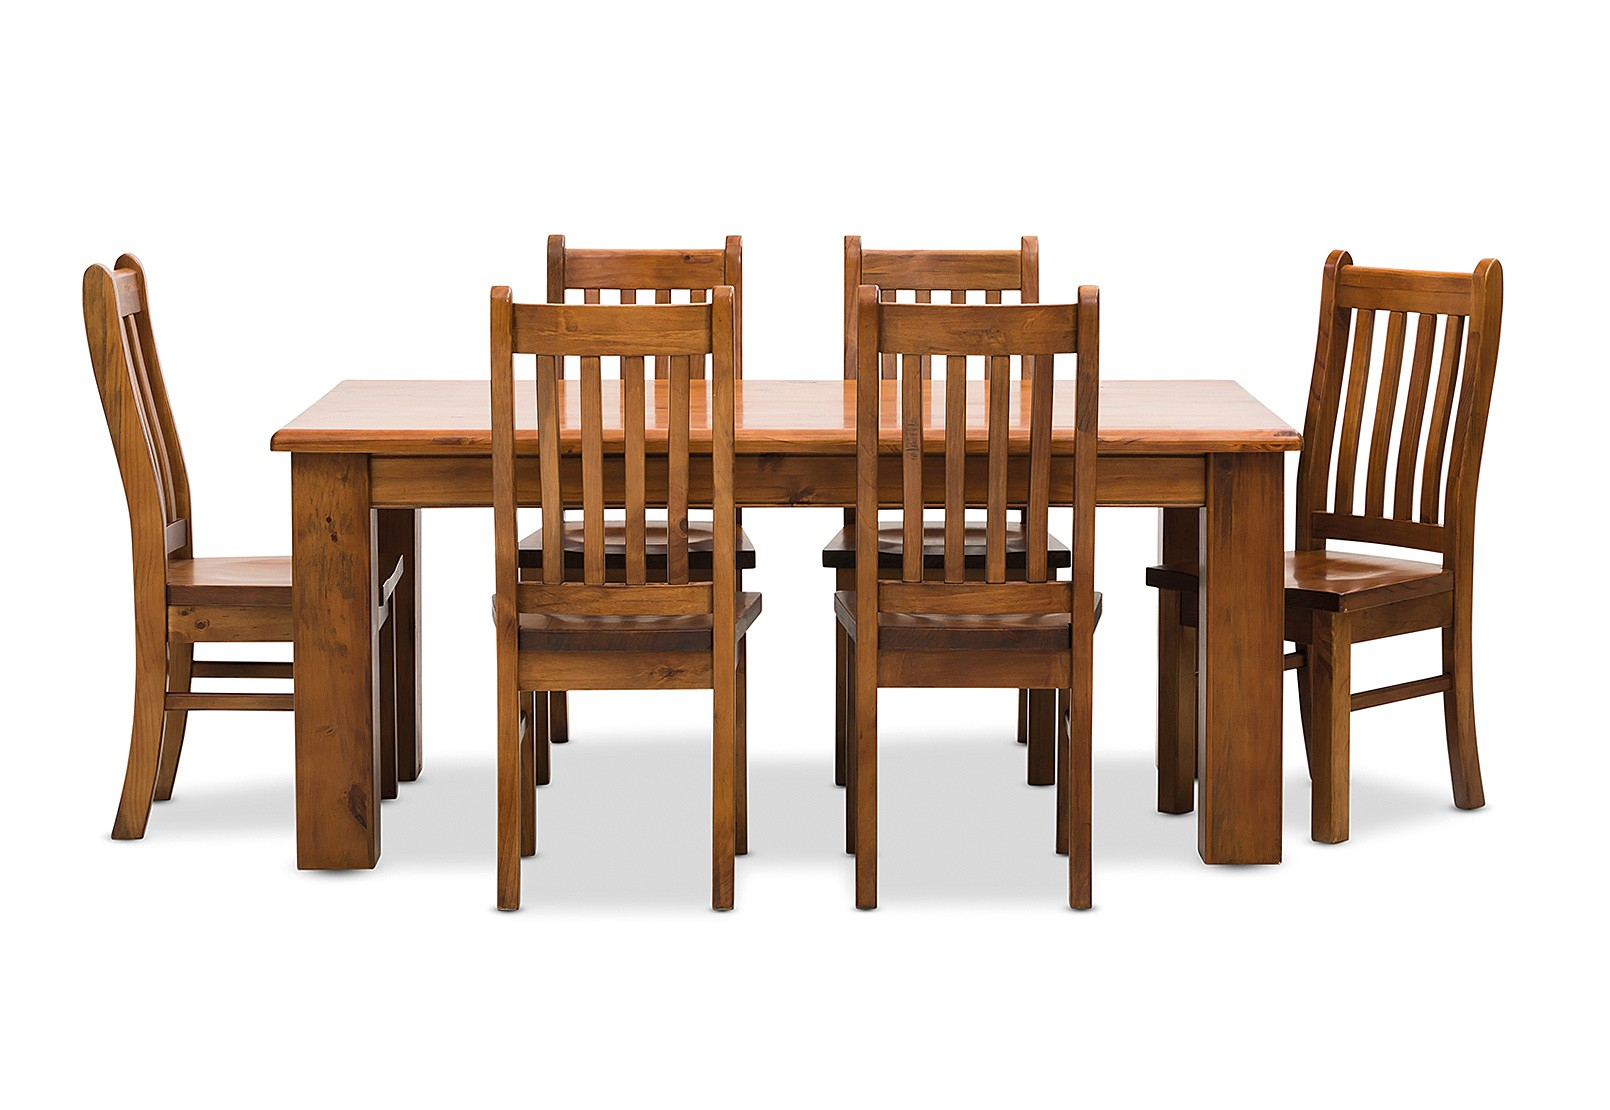 Settler Throughout Most Popular Amir 5 Piece Solid Wood Dining Sets (Set Of 5) (View 9 of 20)